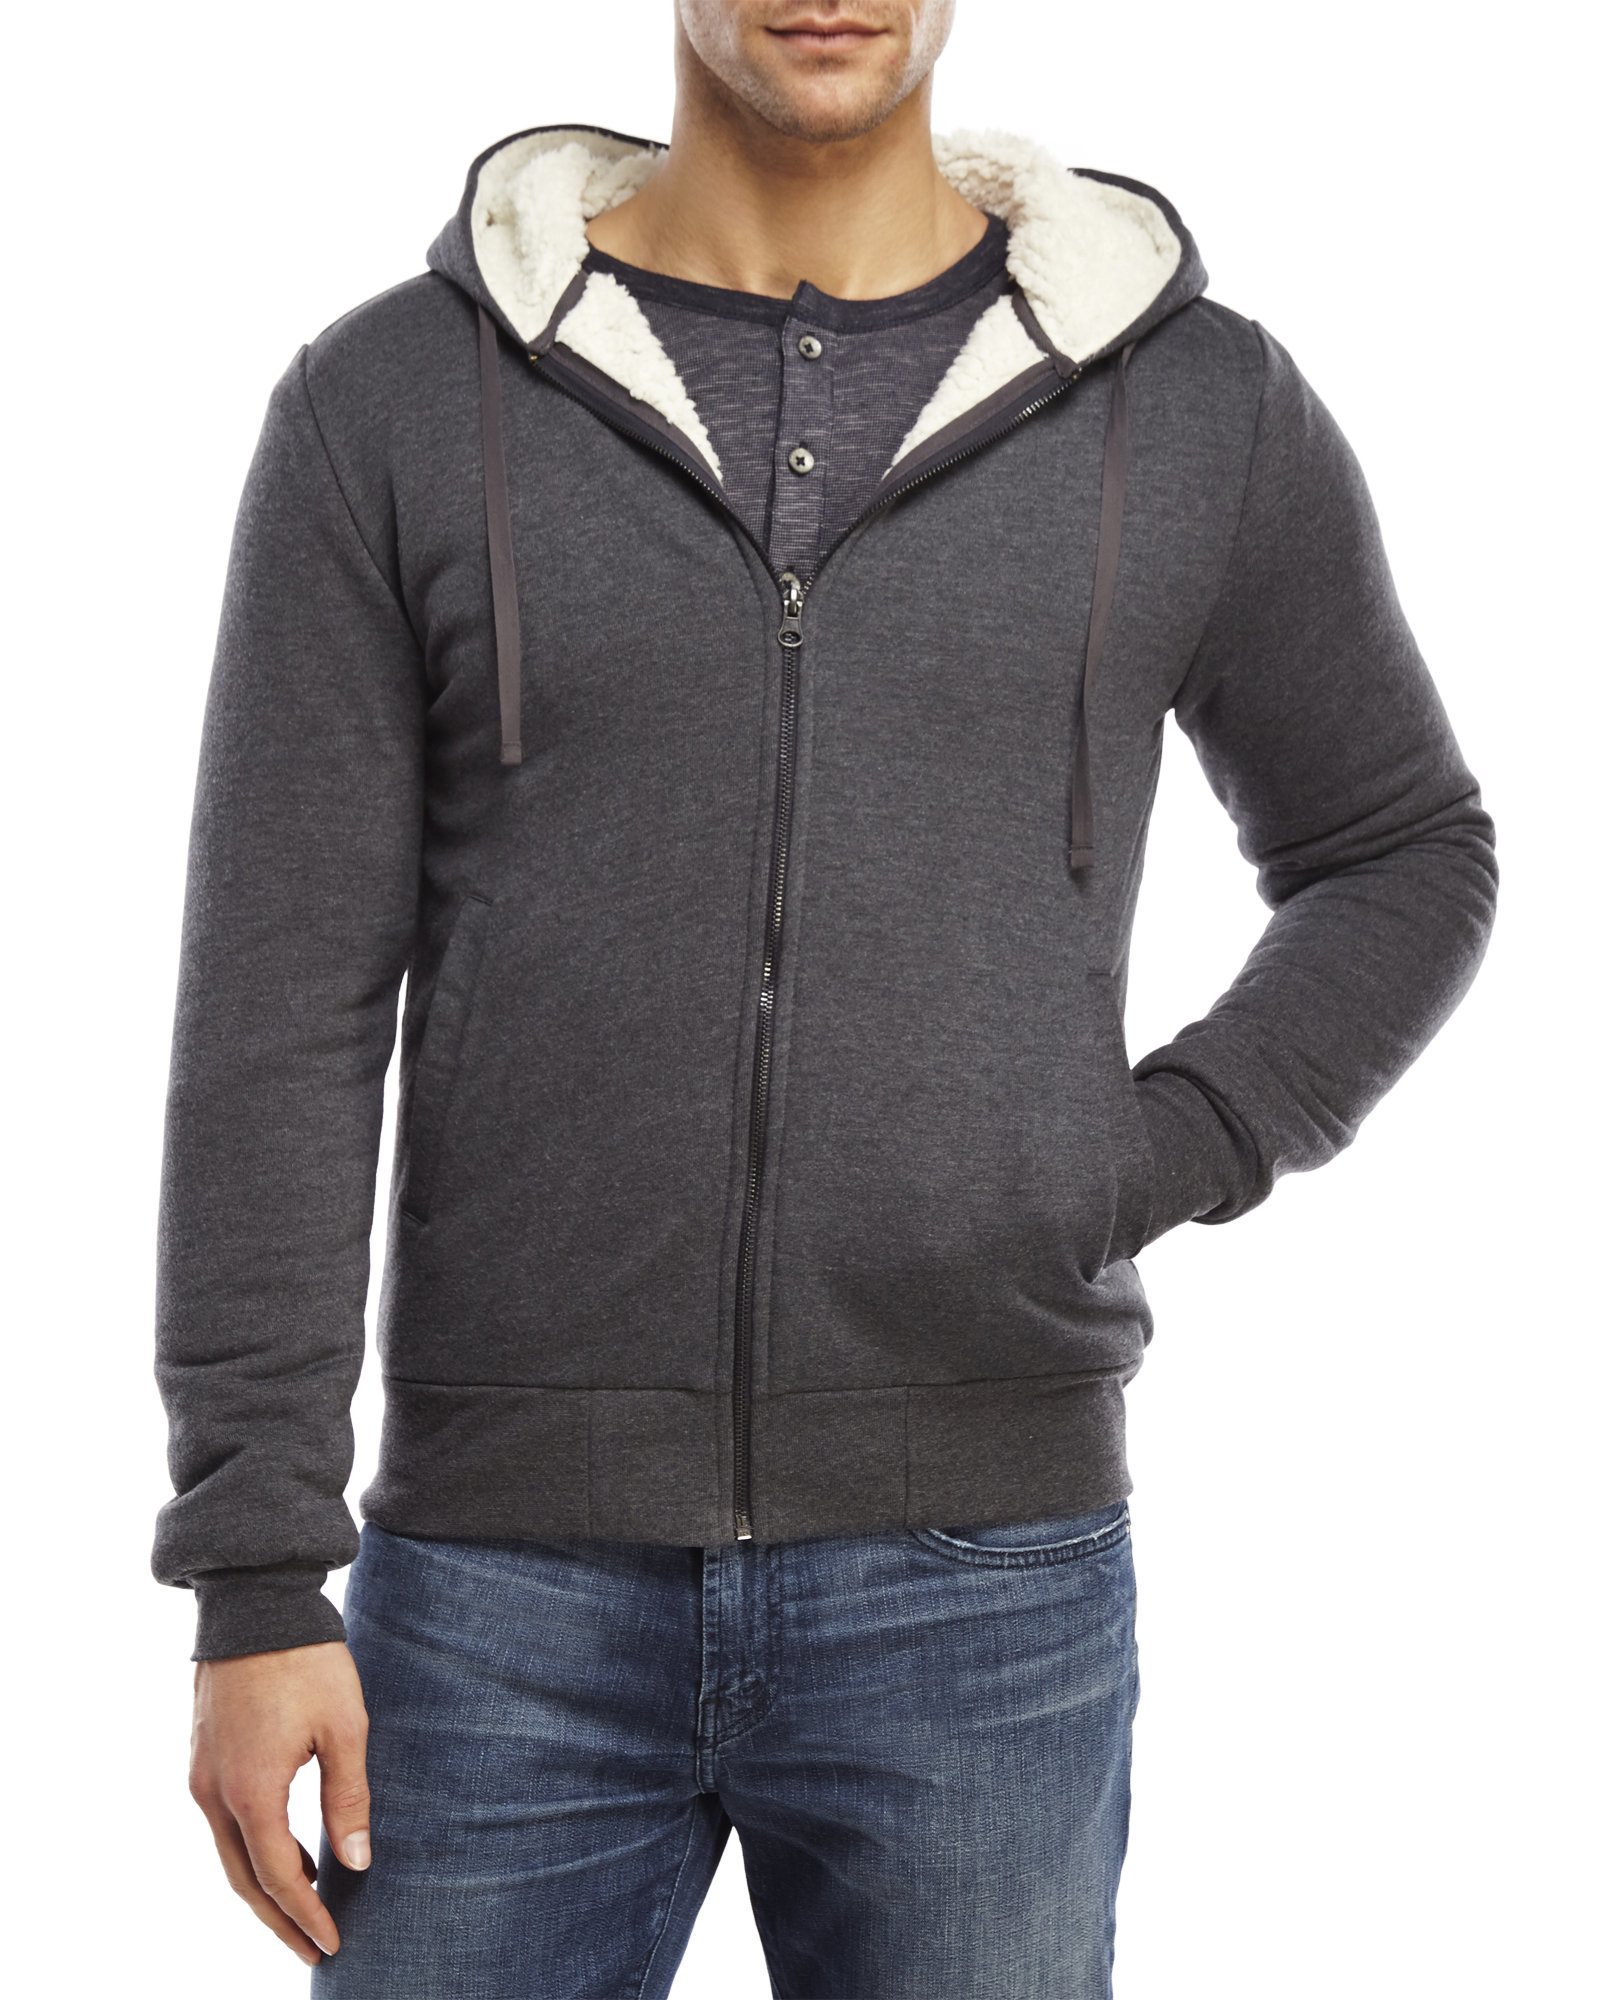 d4bc055e77 Beren Gray Sherpa Lined Zip-Up Hoodie for men